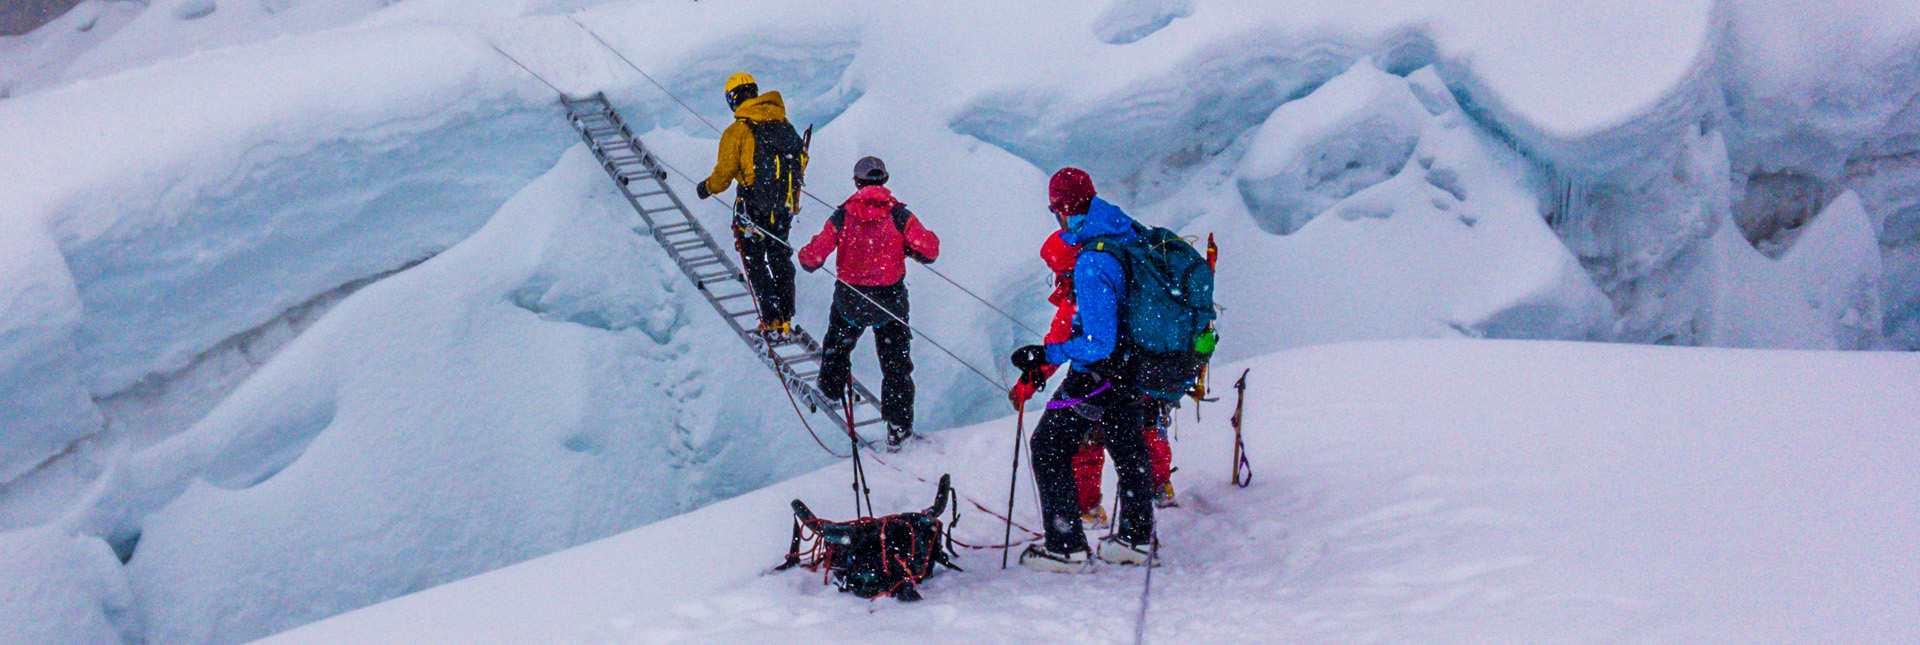 crossing a crevasse during Island Peak climb